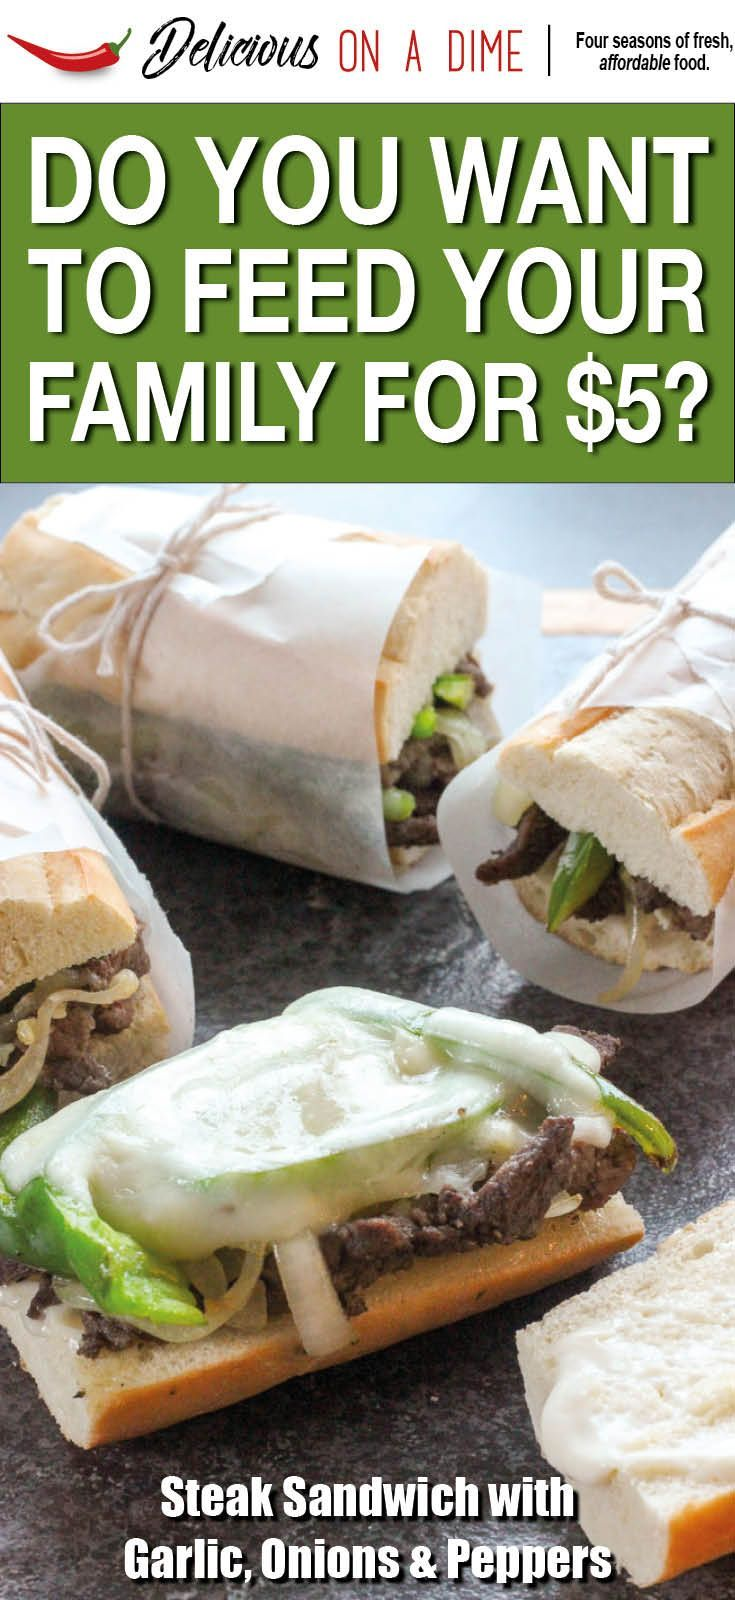 This Steak Sandwich Melt with Garlic, Onions and Peppers is easy enough for a fast weeknight dinner!  With melty cheese and zesty horseradish, it's a cheap and delicious treat!  It's one of our $5 Meals - the answer to your wish for groceries on a budget.  Easy recipes and simple tips mean that frugal meals can still be amazing!  Check out these recipes if you've ever wanted to save money on groceries! #savemoney #savemoneyongroceries #steak #sandwich #steaksandwich